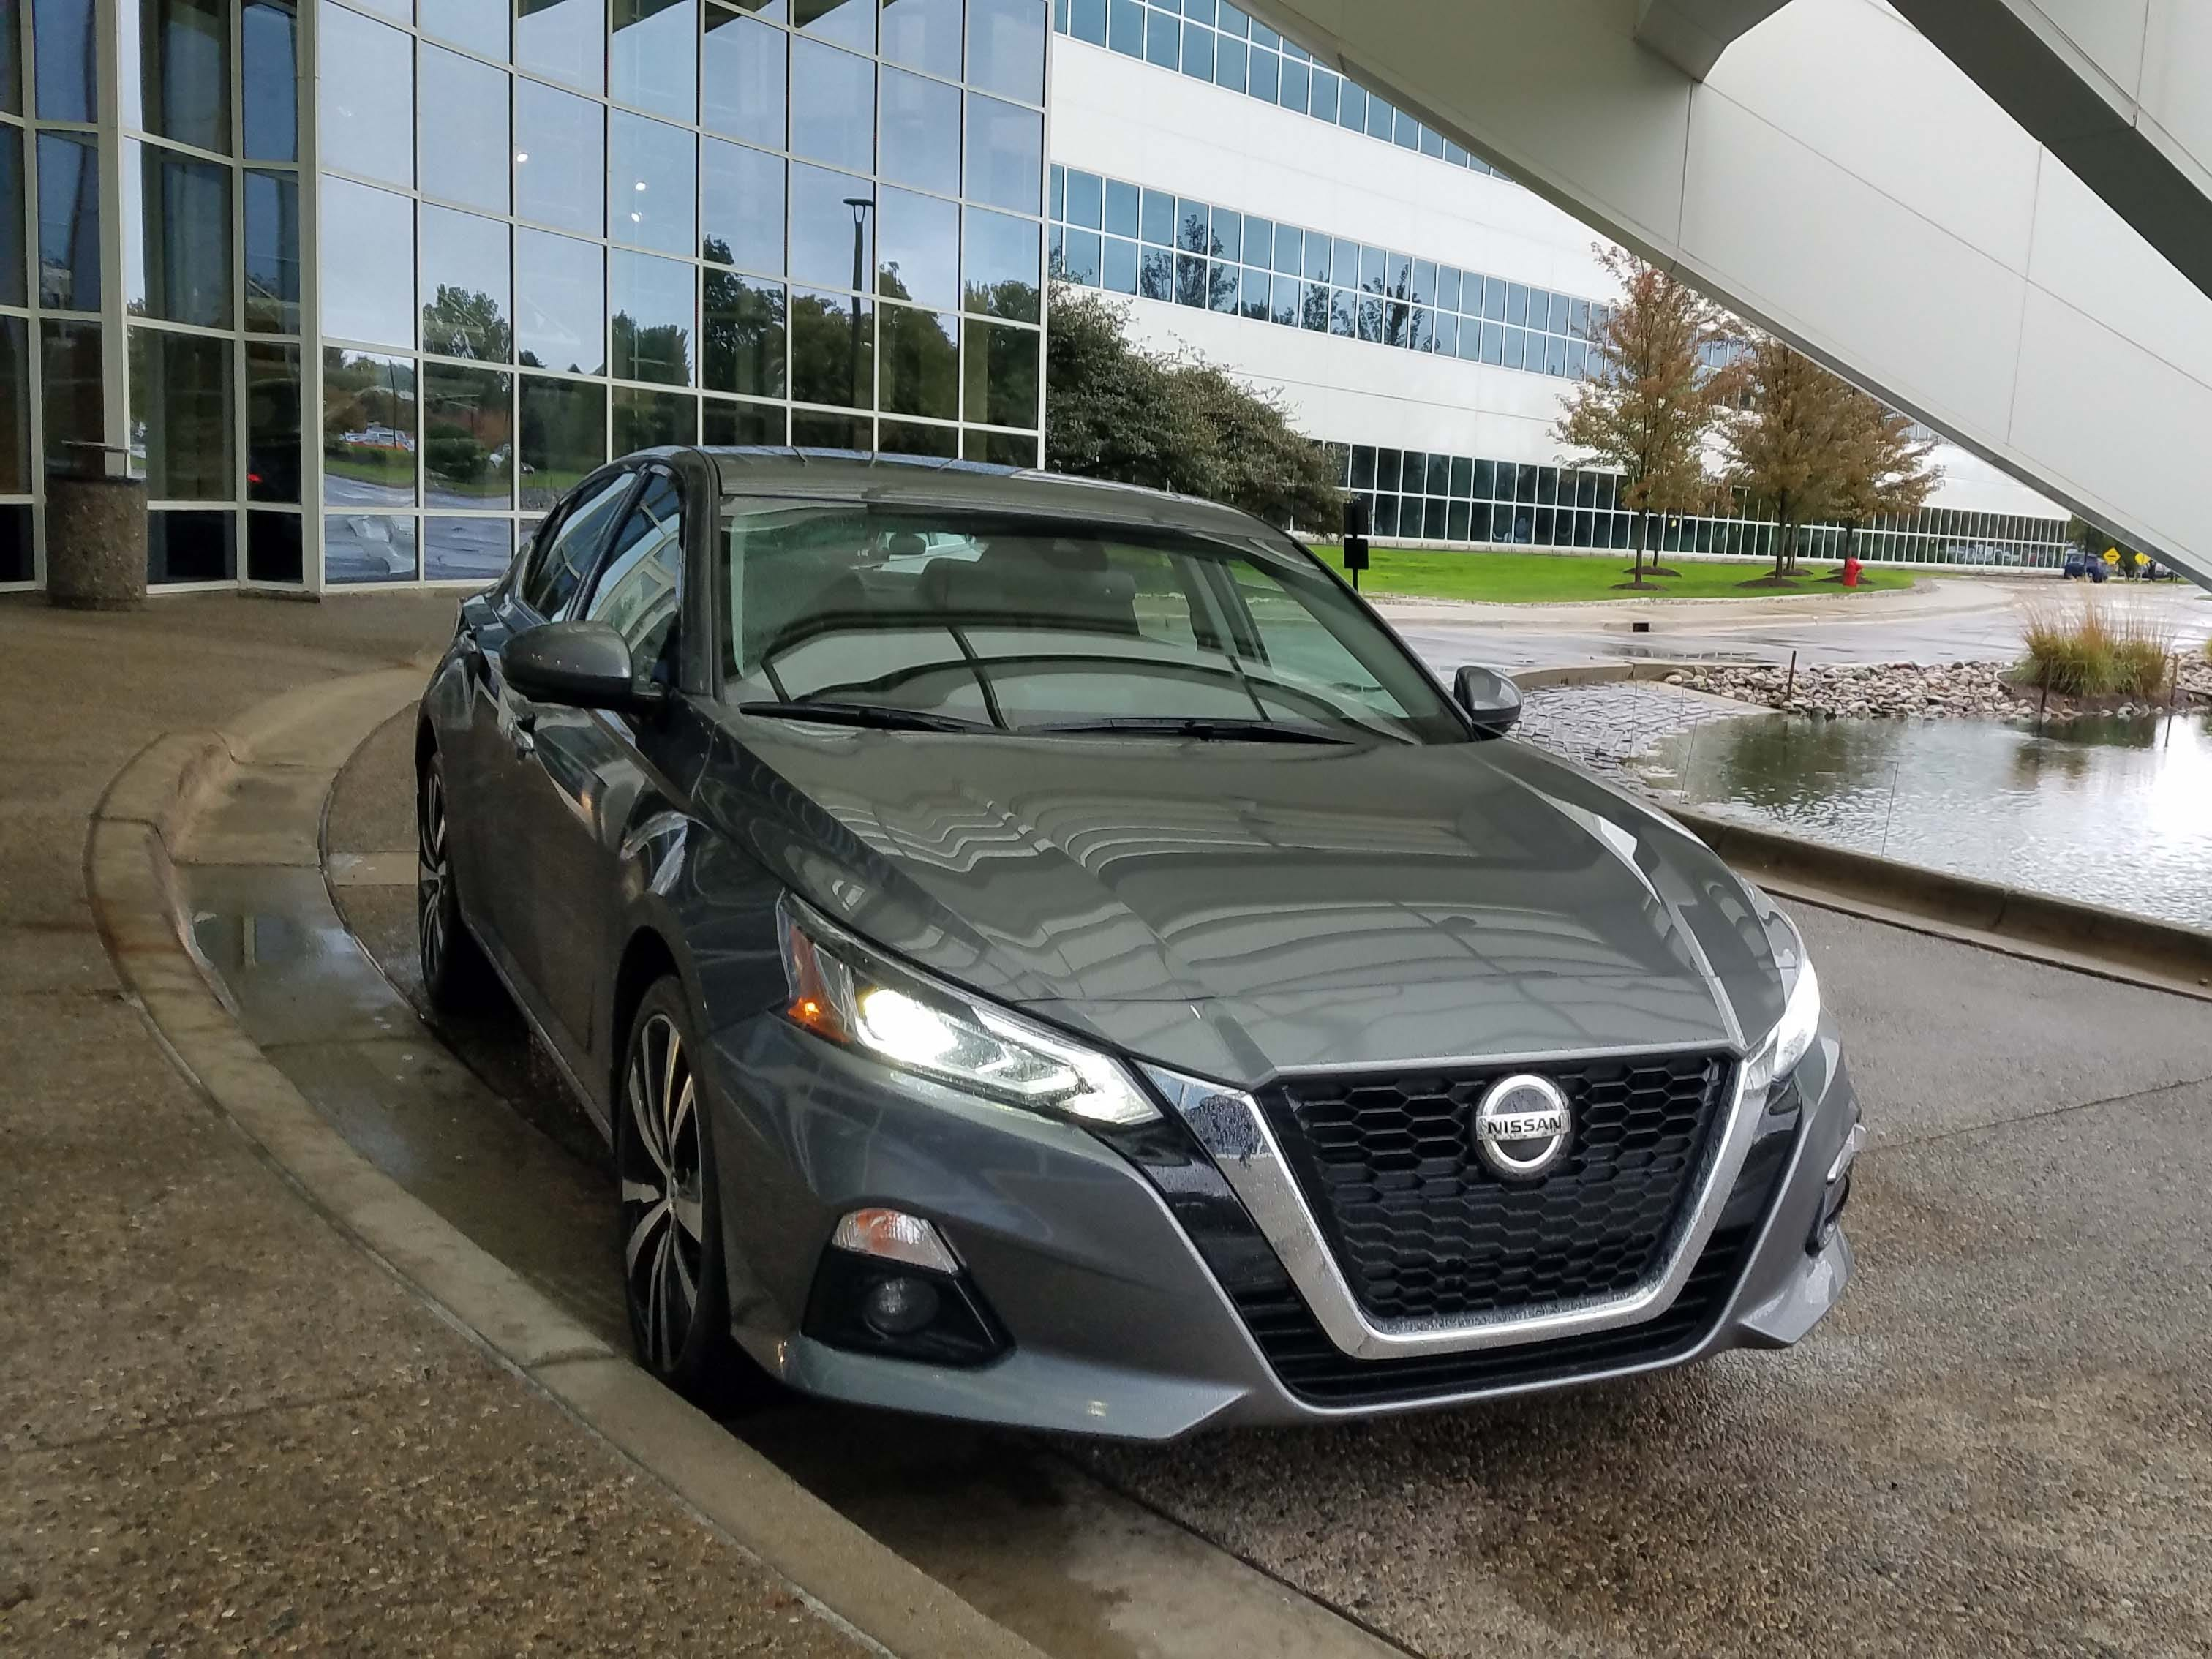 The 2019 Altima pictured at Nissan's Farmington Hills tech center —  the car is made in Tennessee and exported around the world.